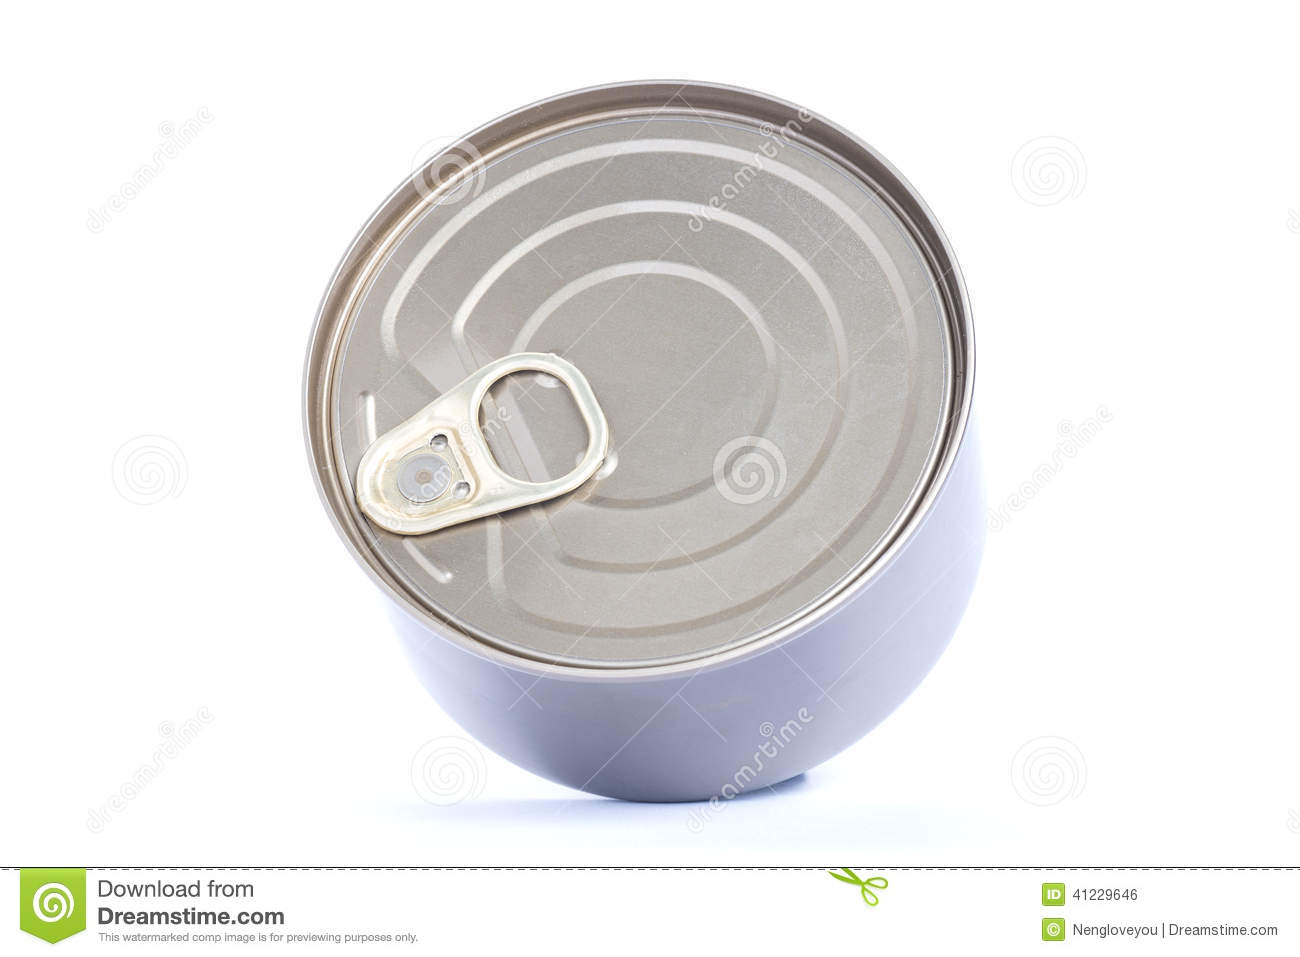 Aluminum cans aluminum cans food for Cuisine aluminium